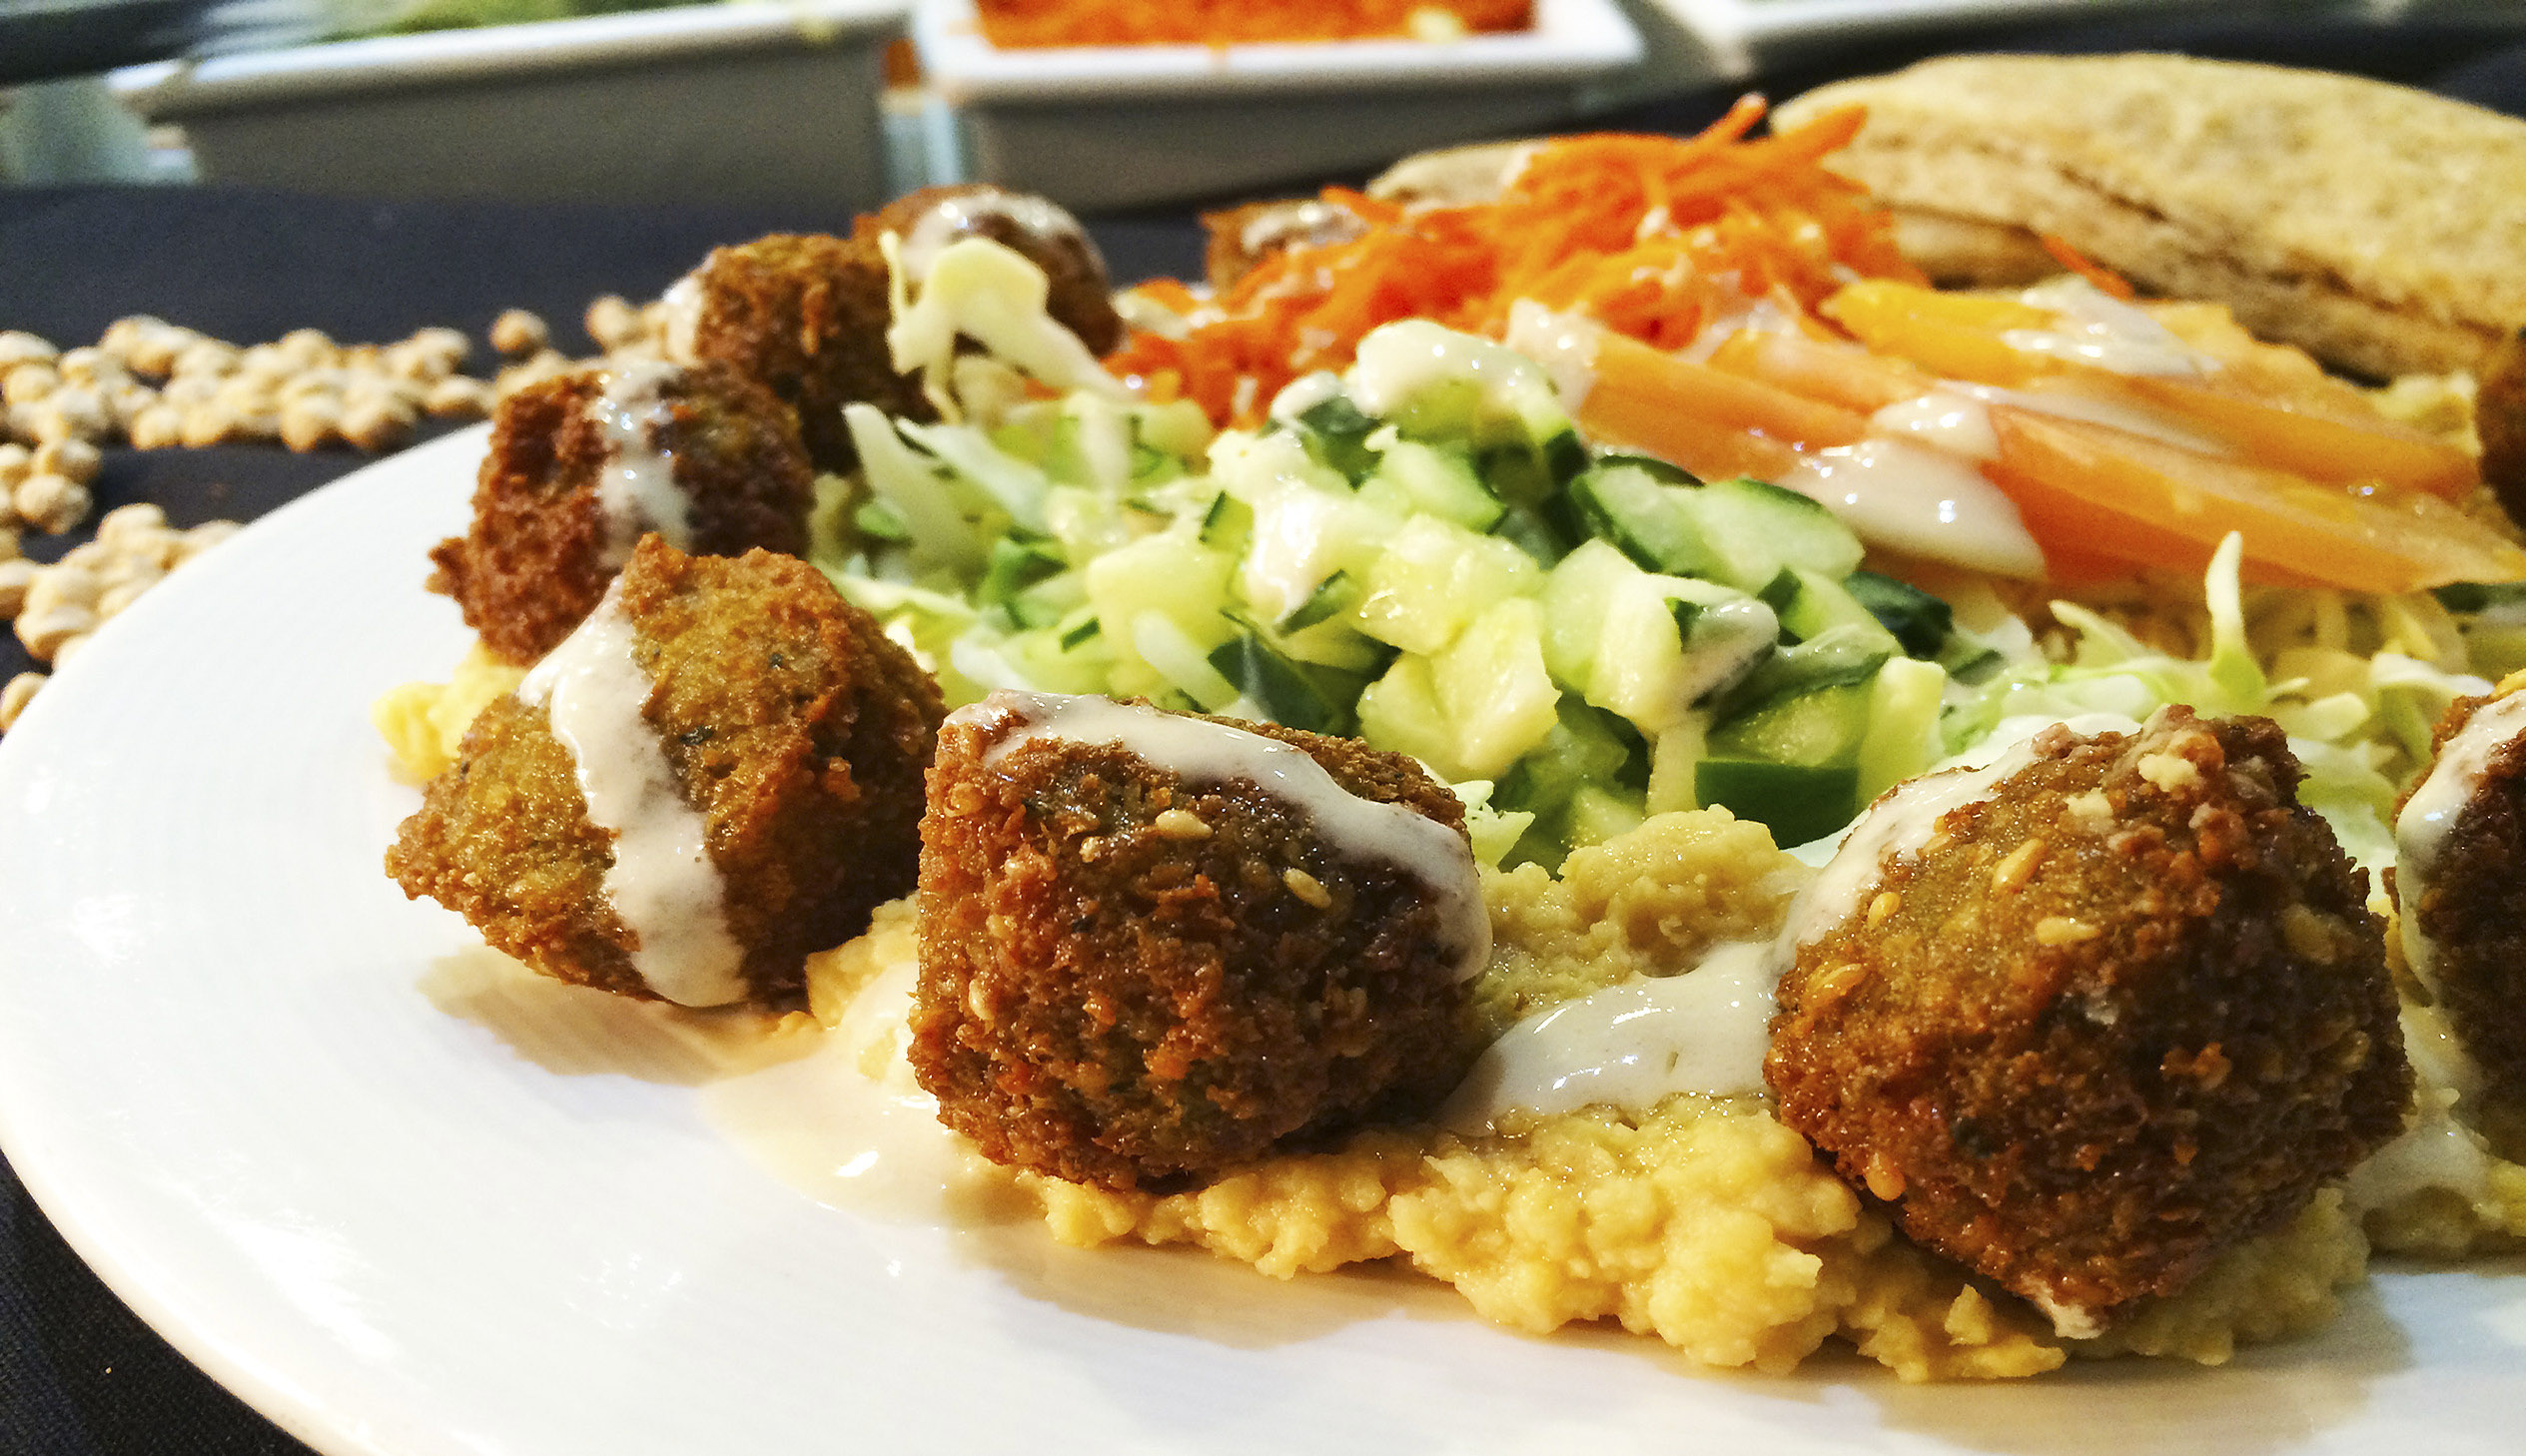 The Falafel Frisbee plate at Flying Falafel